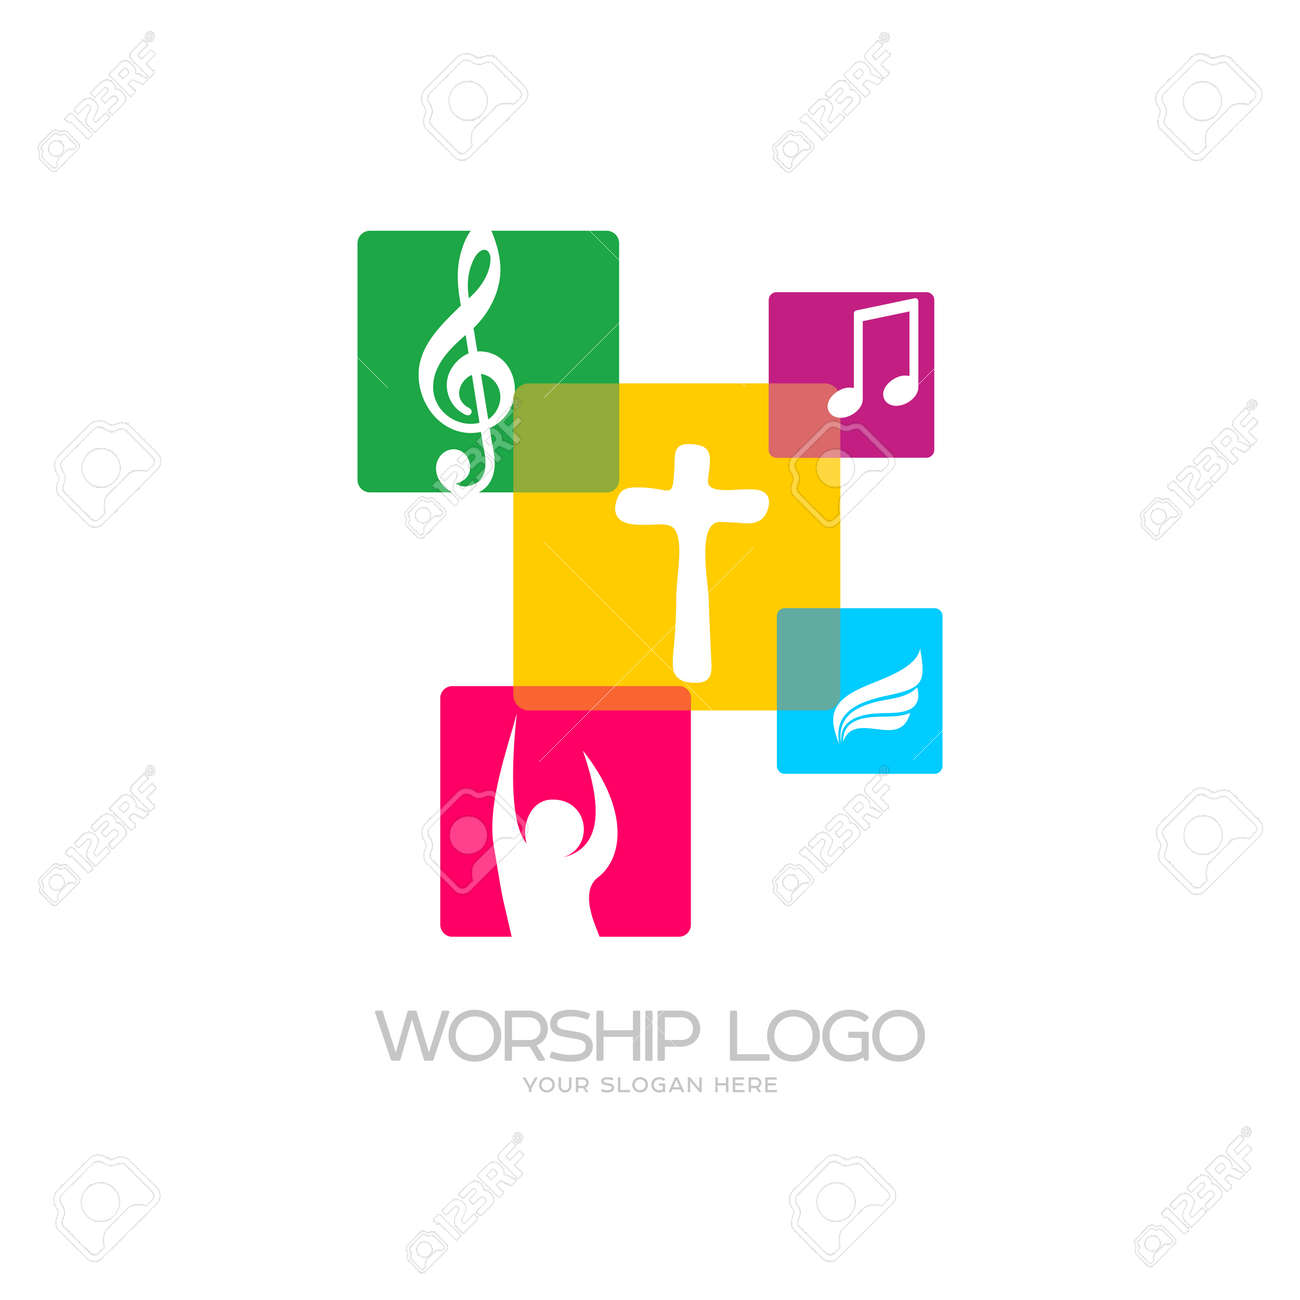 worship logo cristian symbols the cross of jesus musical notes rh 123rf com Music Notes Single Music Notes